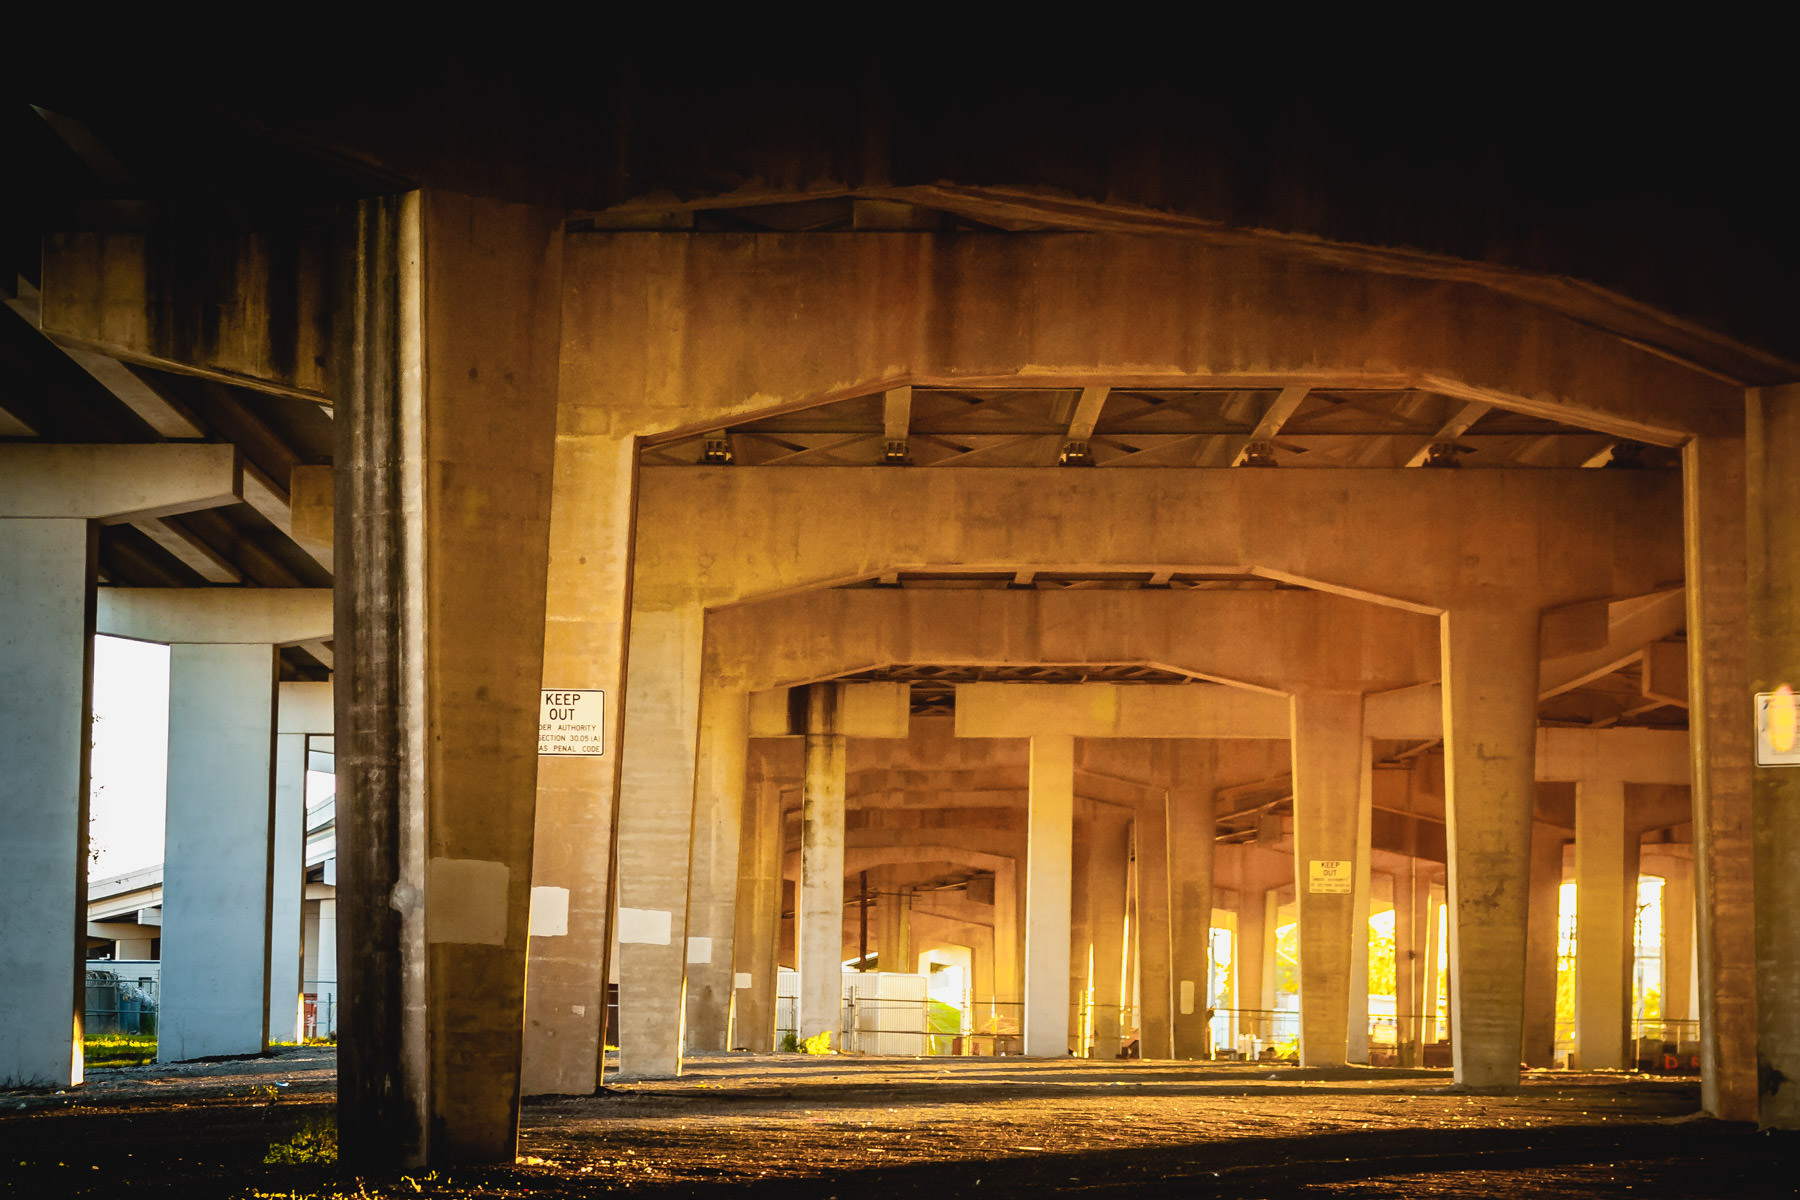 Underneath Interstate 30 just east of Downtown Dallas.